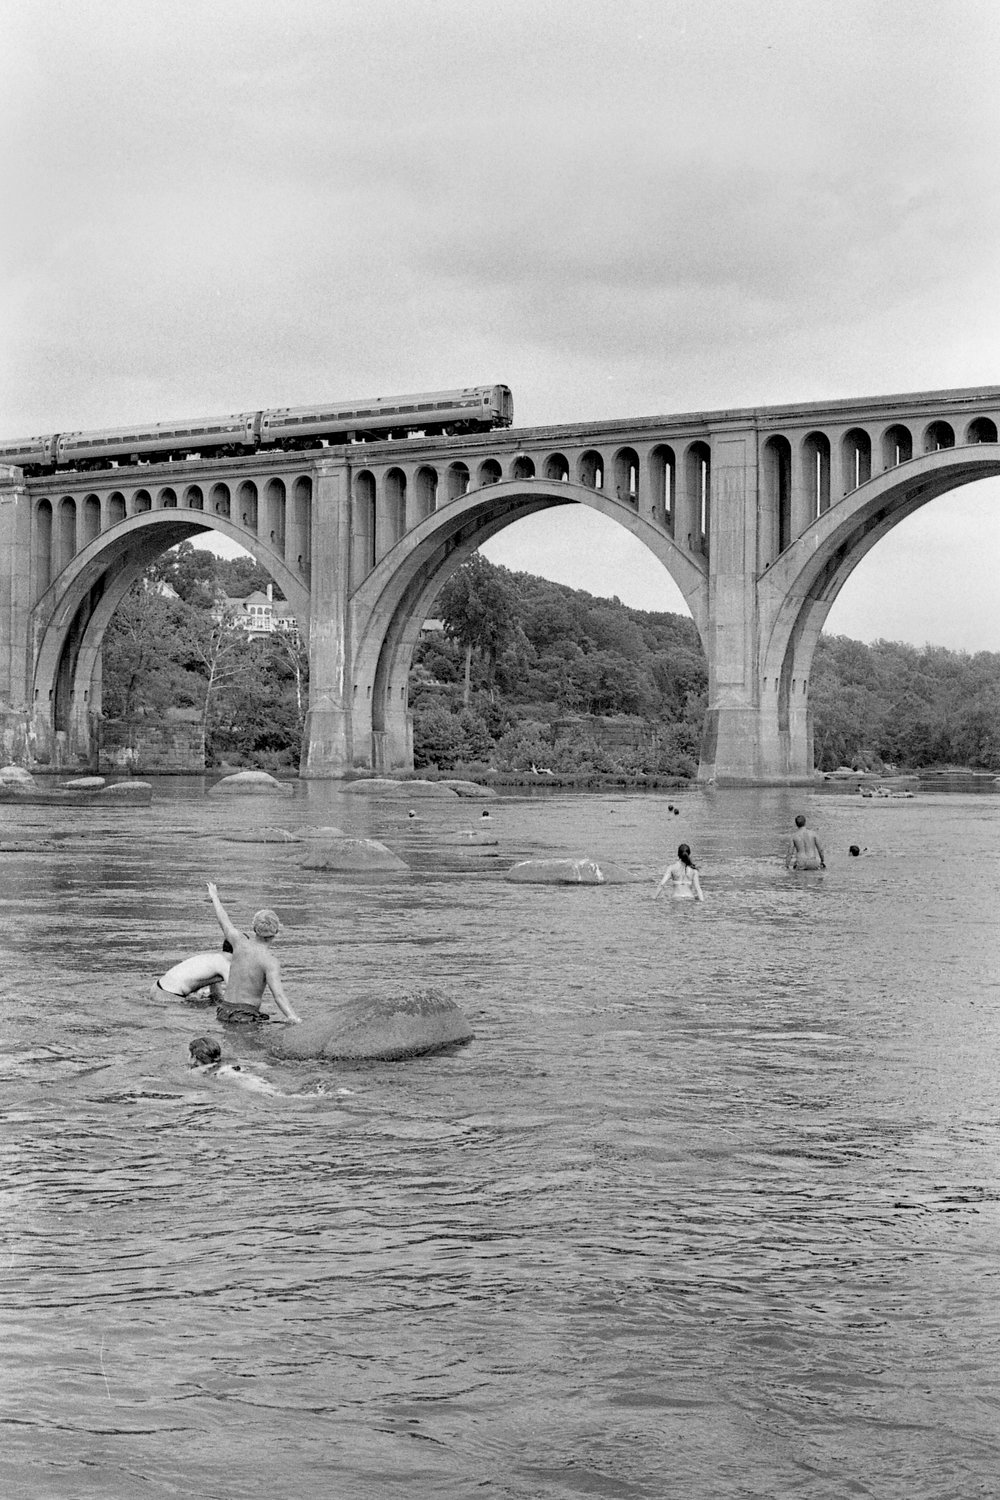 John Dijulio,  Trip to the River with Sam, John, and Hei , silver gelatin print